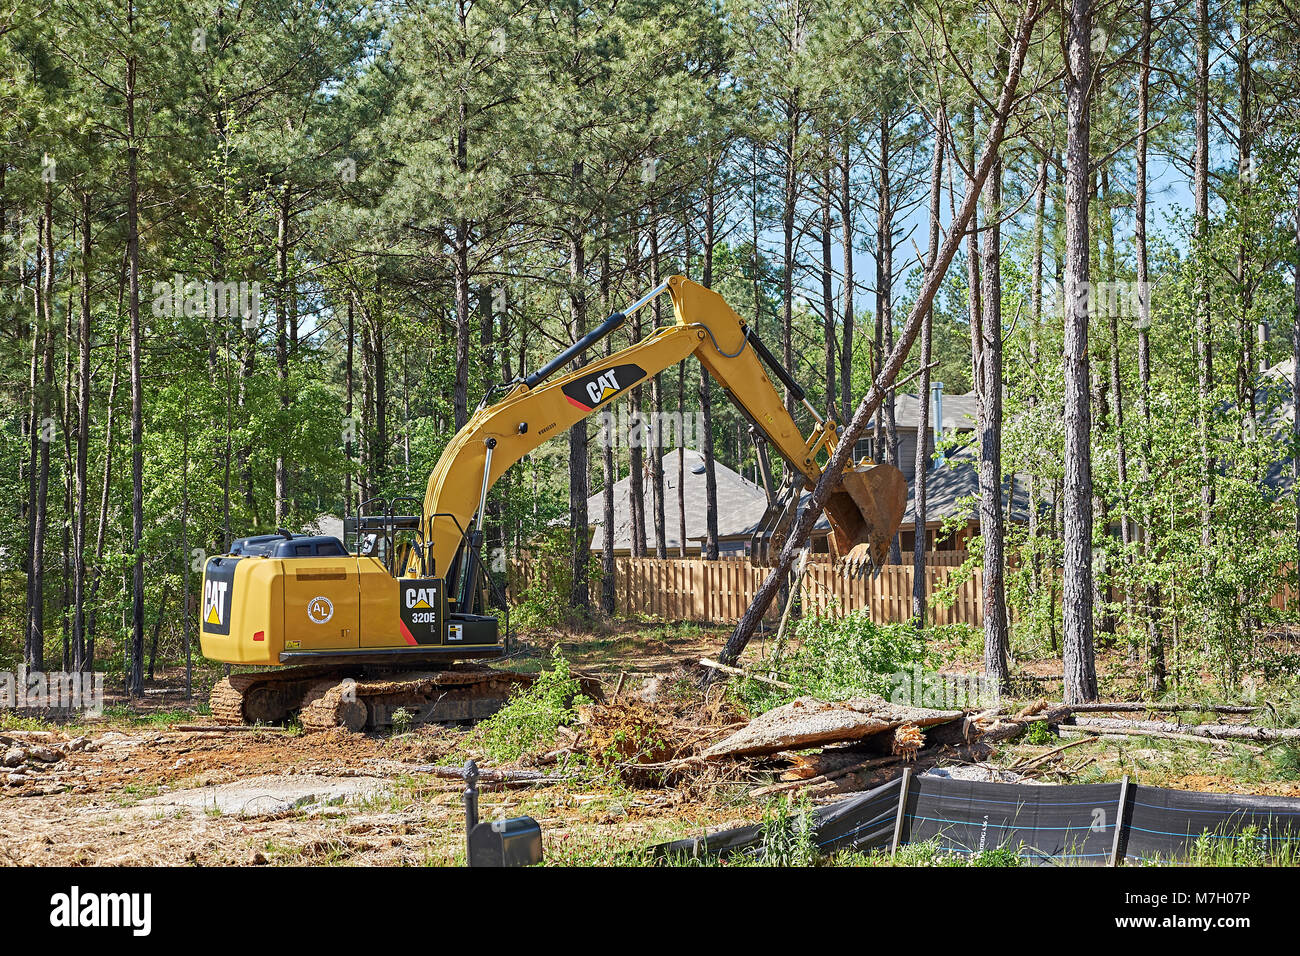 Digger or excavator clearing land for new construction building lot in Pike Road Alabama, USA. - Stock Image